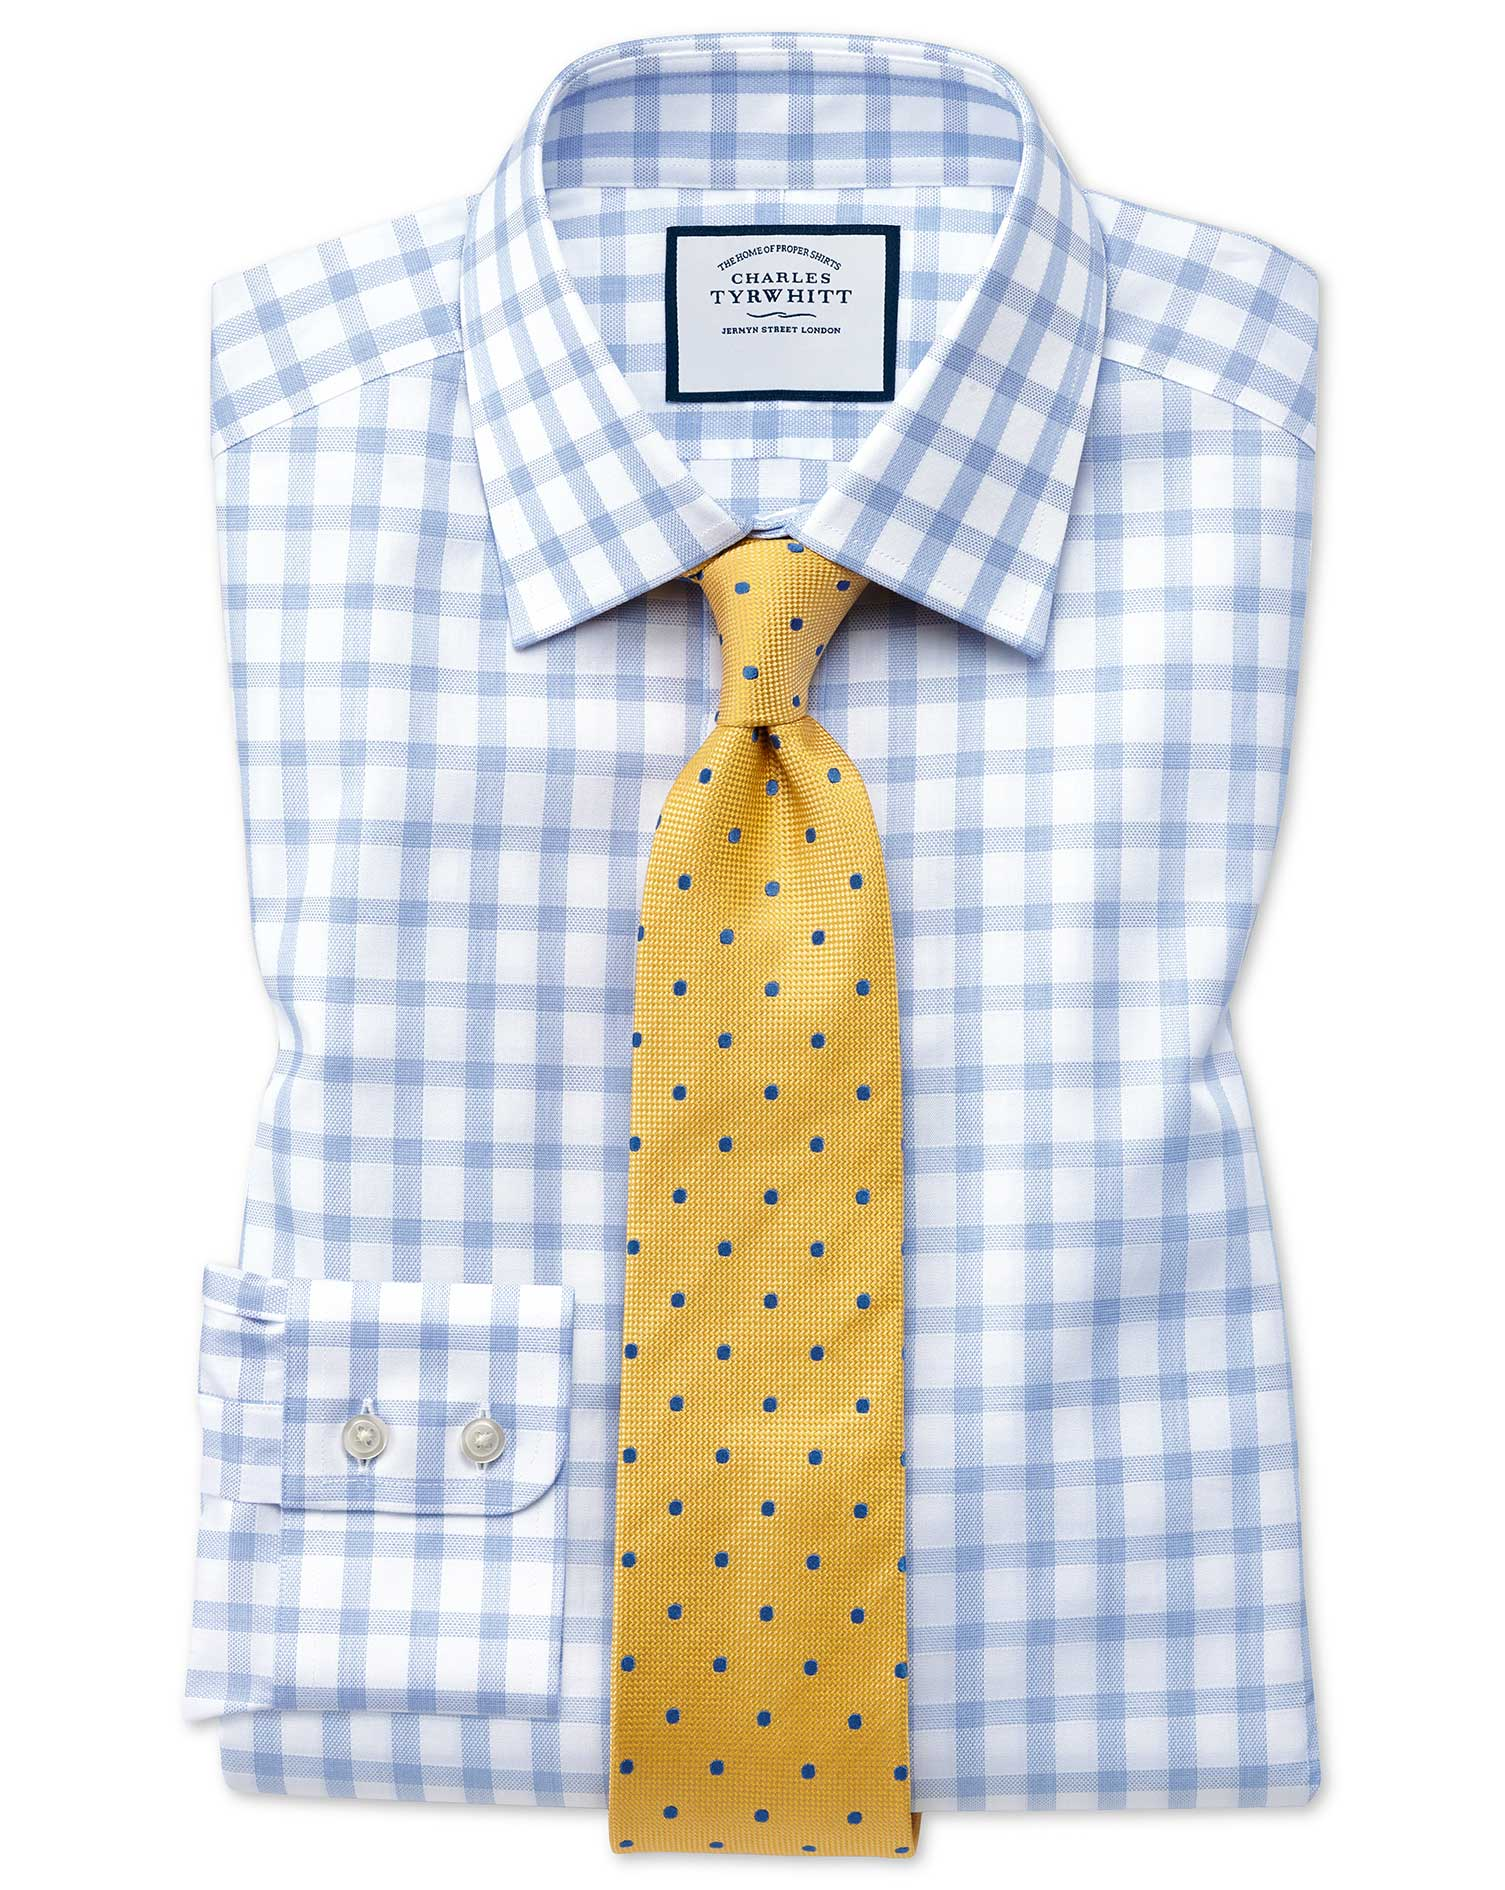 Slim Fit Windowpane Check Sky Blue Cotton Formal Shirt Single Cuff Size 16/35 by Charles Tyrwhitt